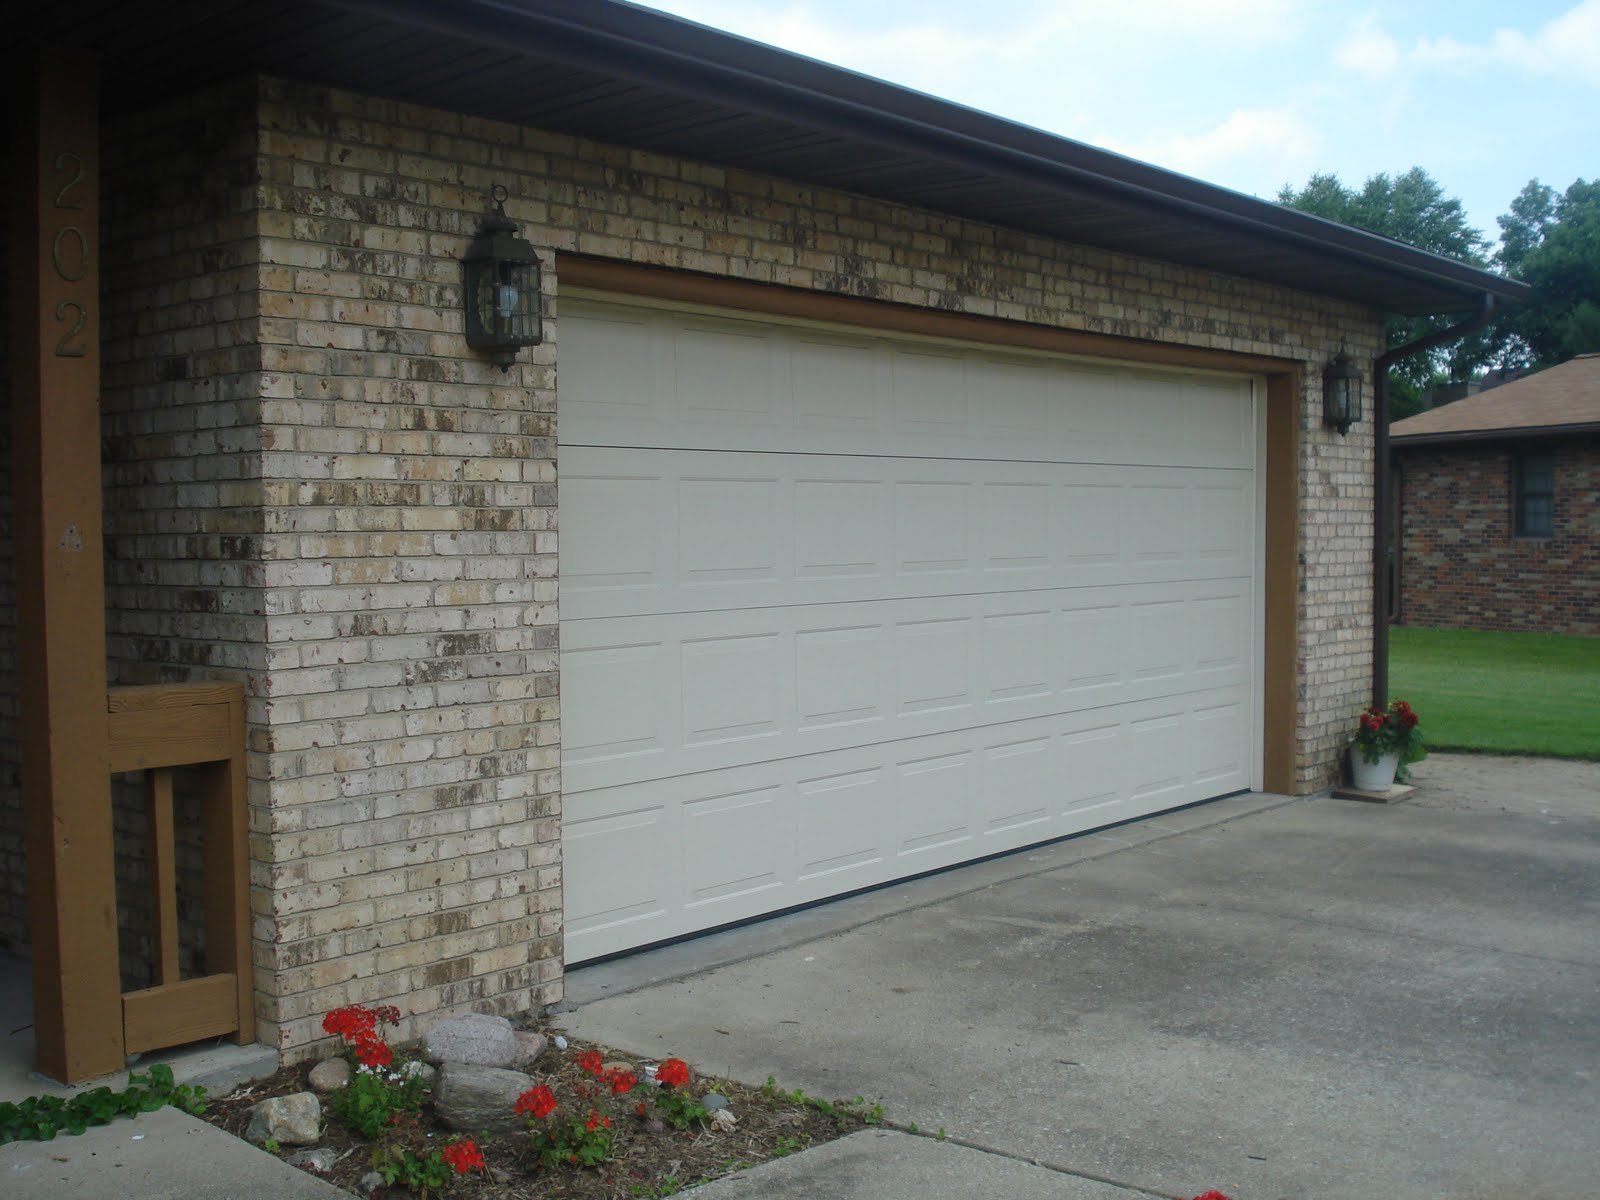 1200 #1590B6 Two Car Garage With New Garage Door Opener And Newer Garage Door Pull  image Walton Garage Doors 38131600